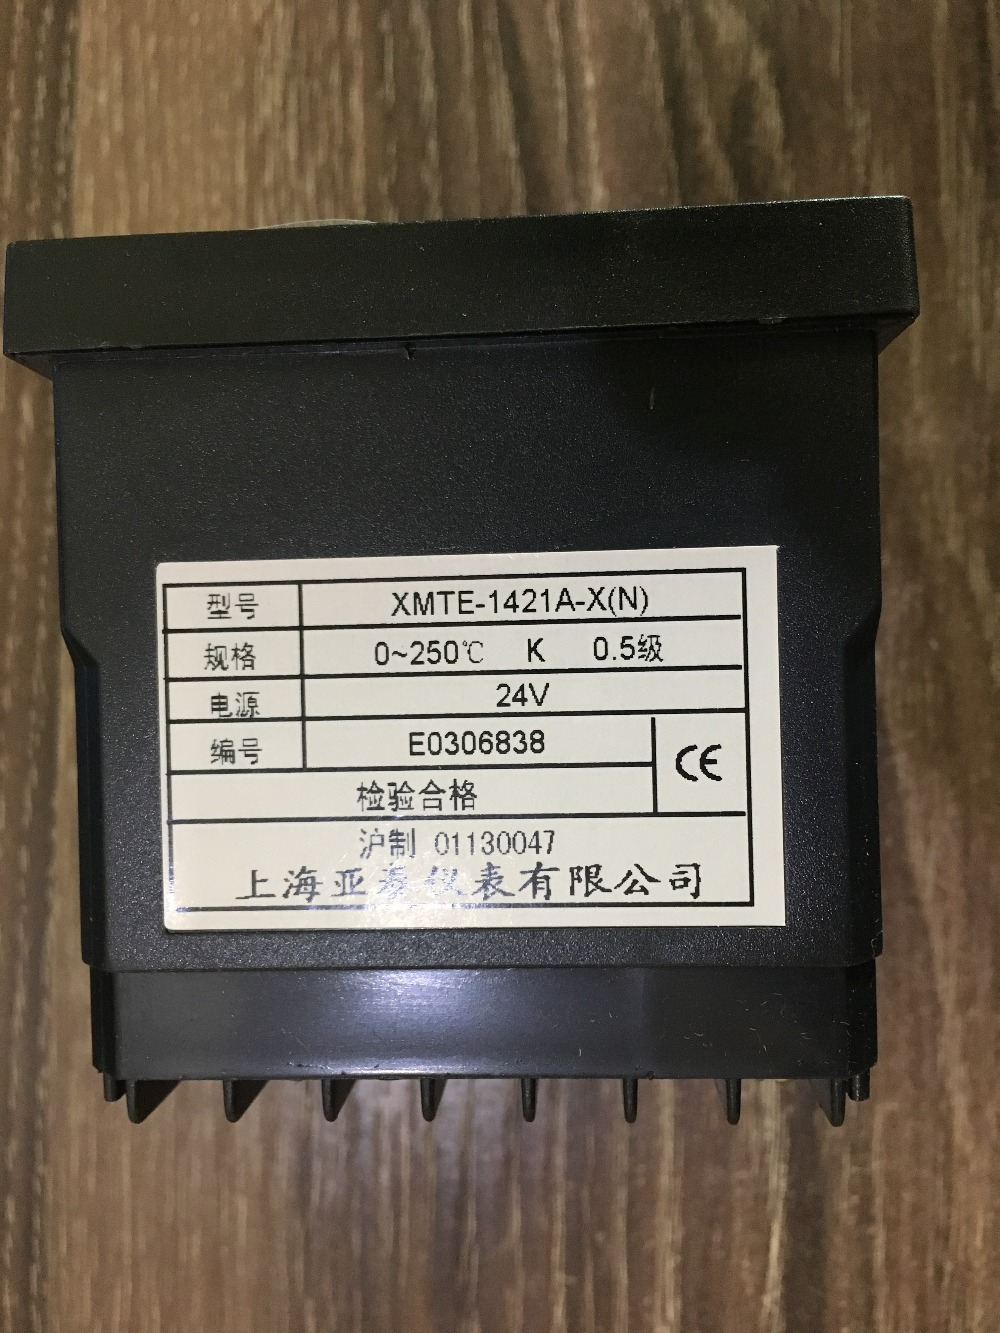 AISET Authentic Shanghai   temperature controller new version xmte 1421a x(n) of  xmte 1421a x  thermostat original-in Temperature Instruments from Tools    1